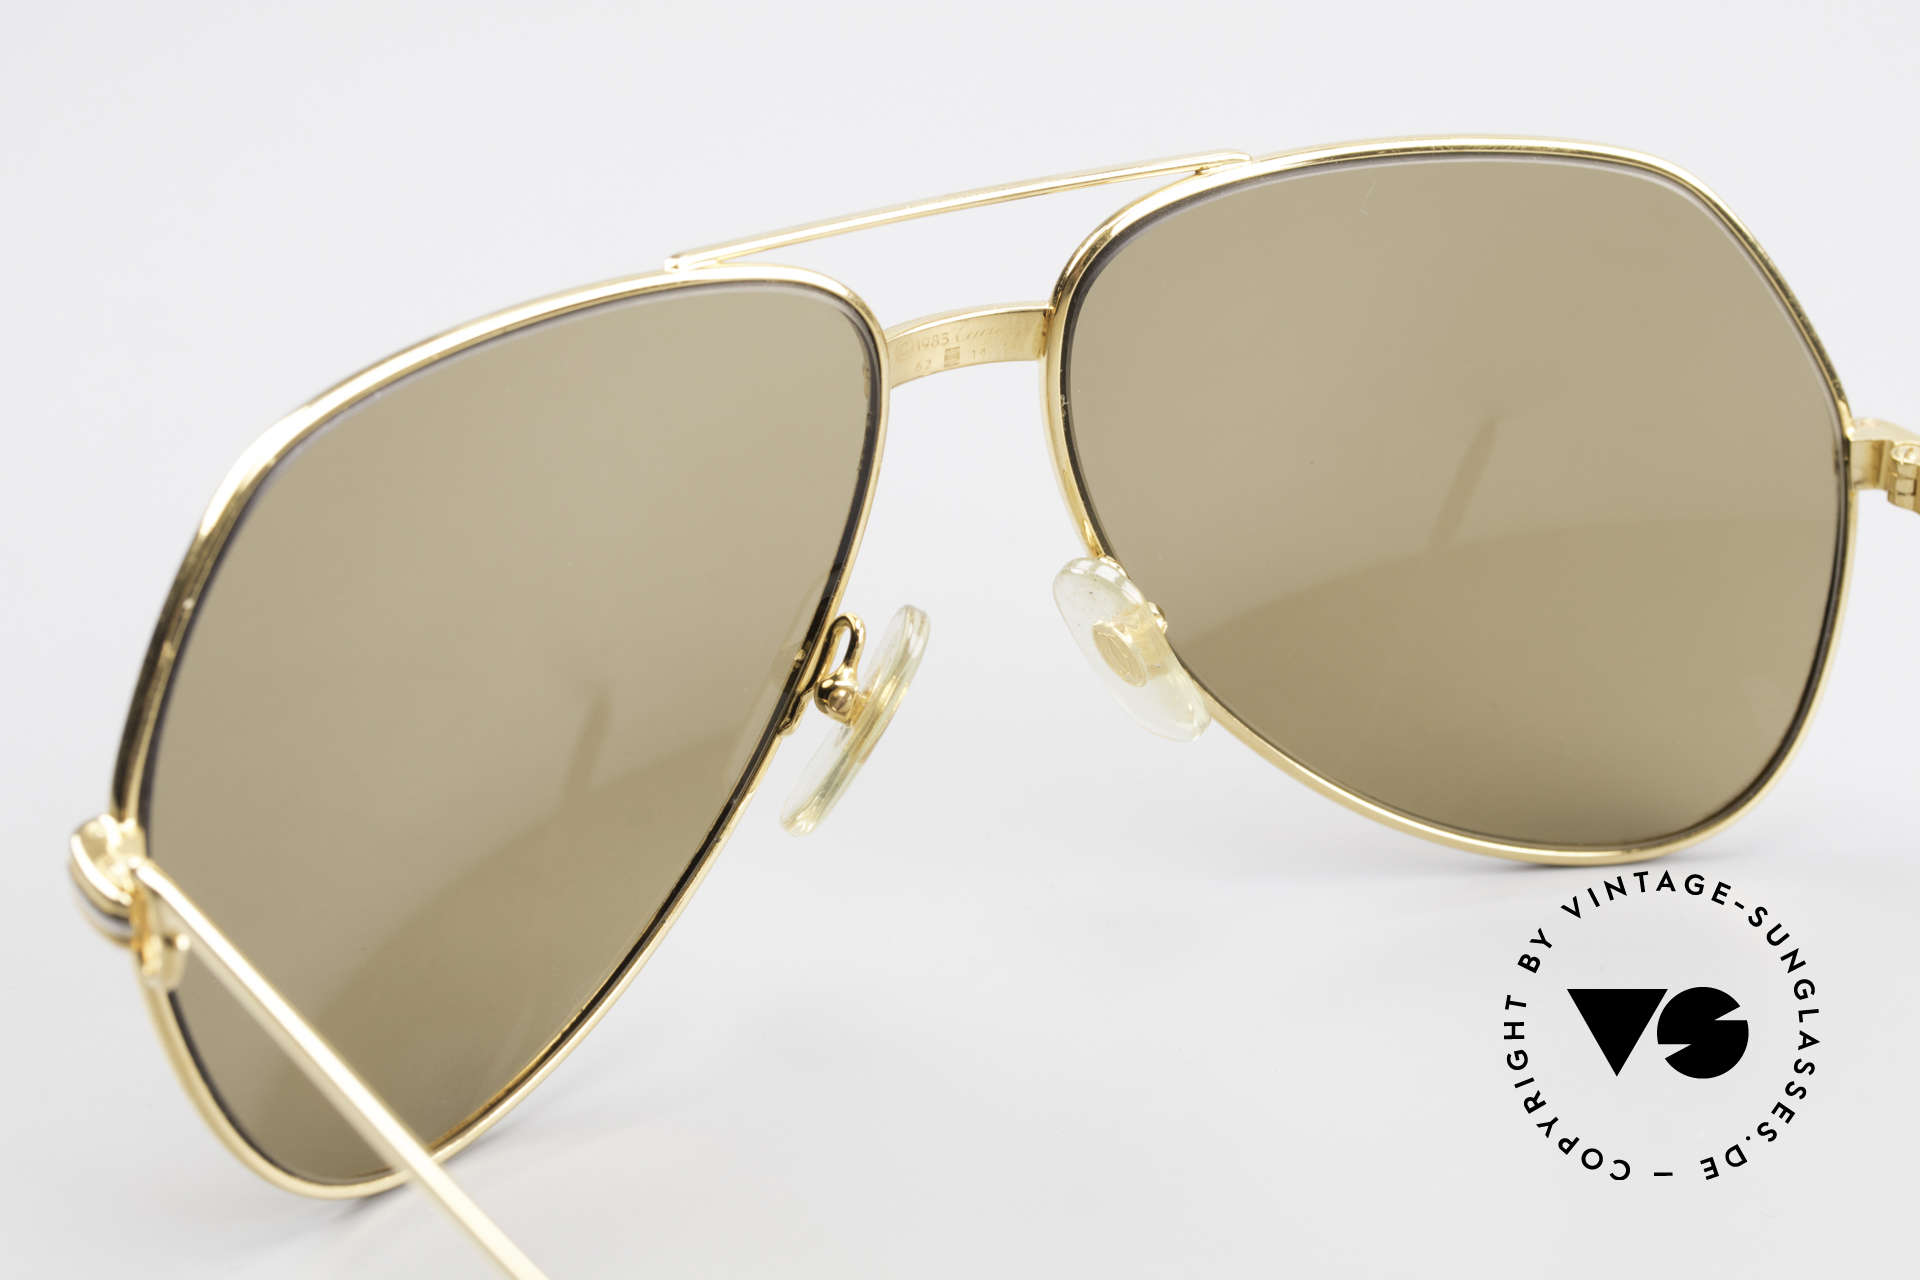 Cartier Vendome LC - L Original Cartier Mineral Lenses, unworn, new old stock (NOS), with full original packing, Made for Men